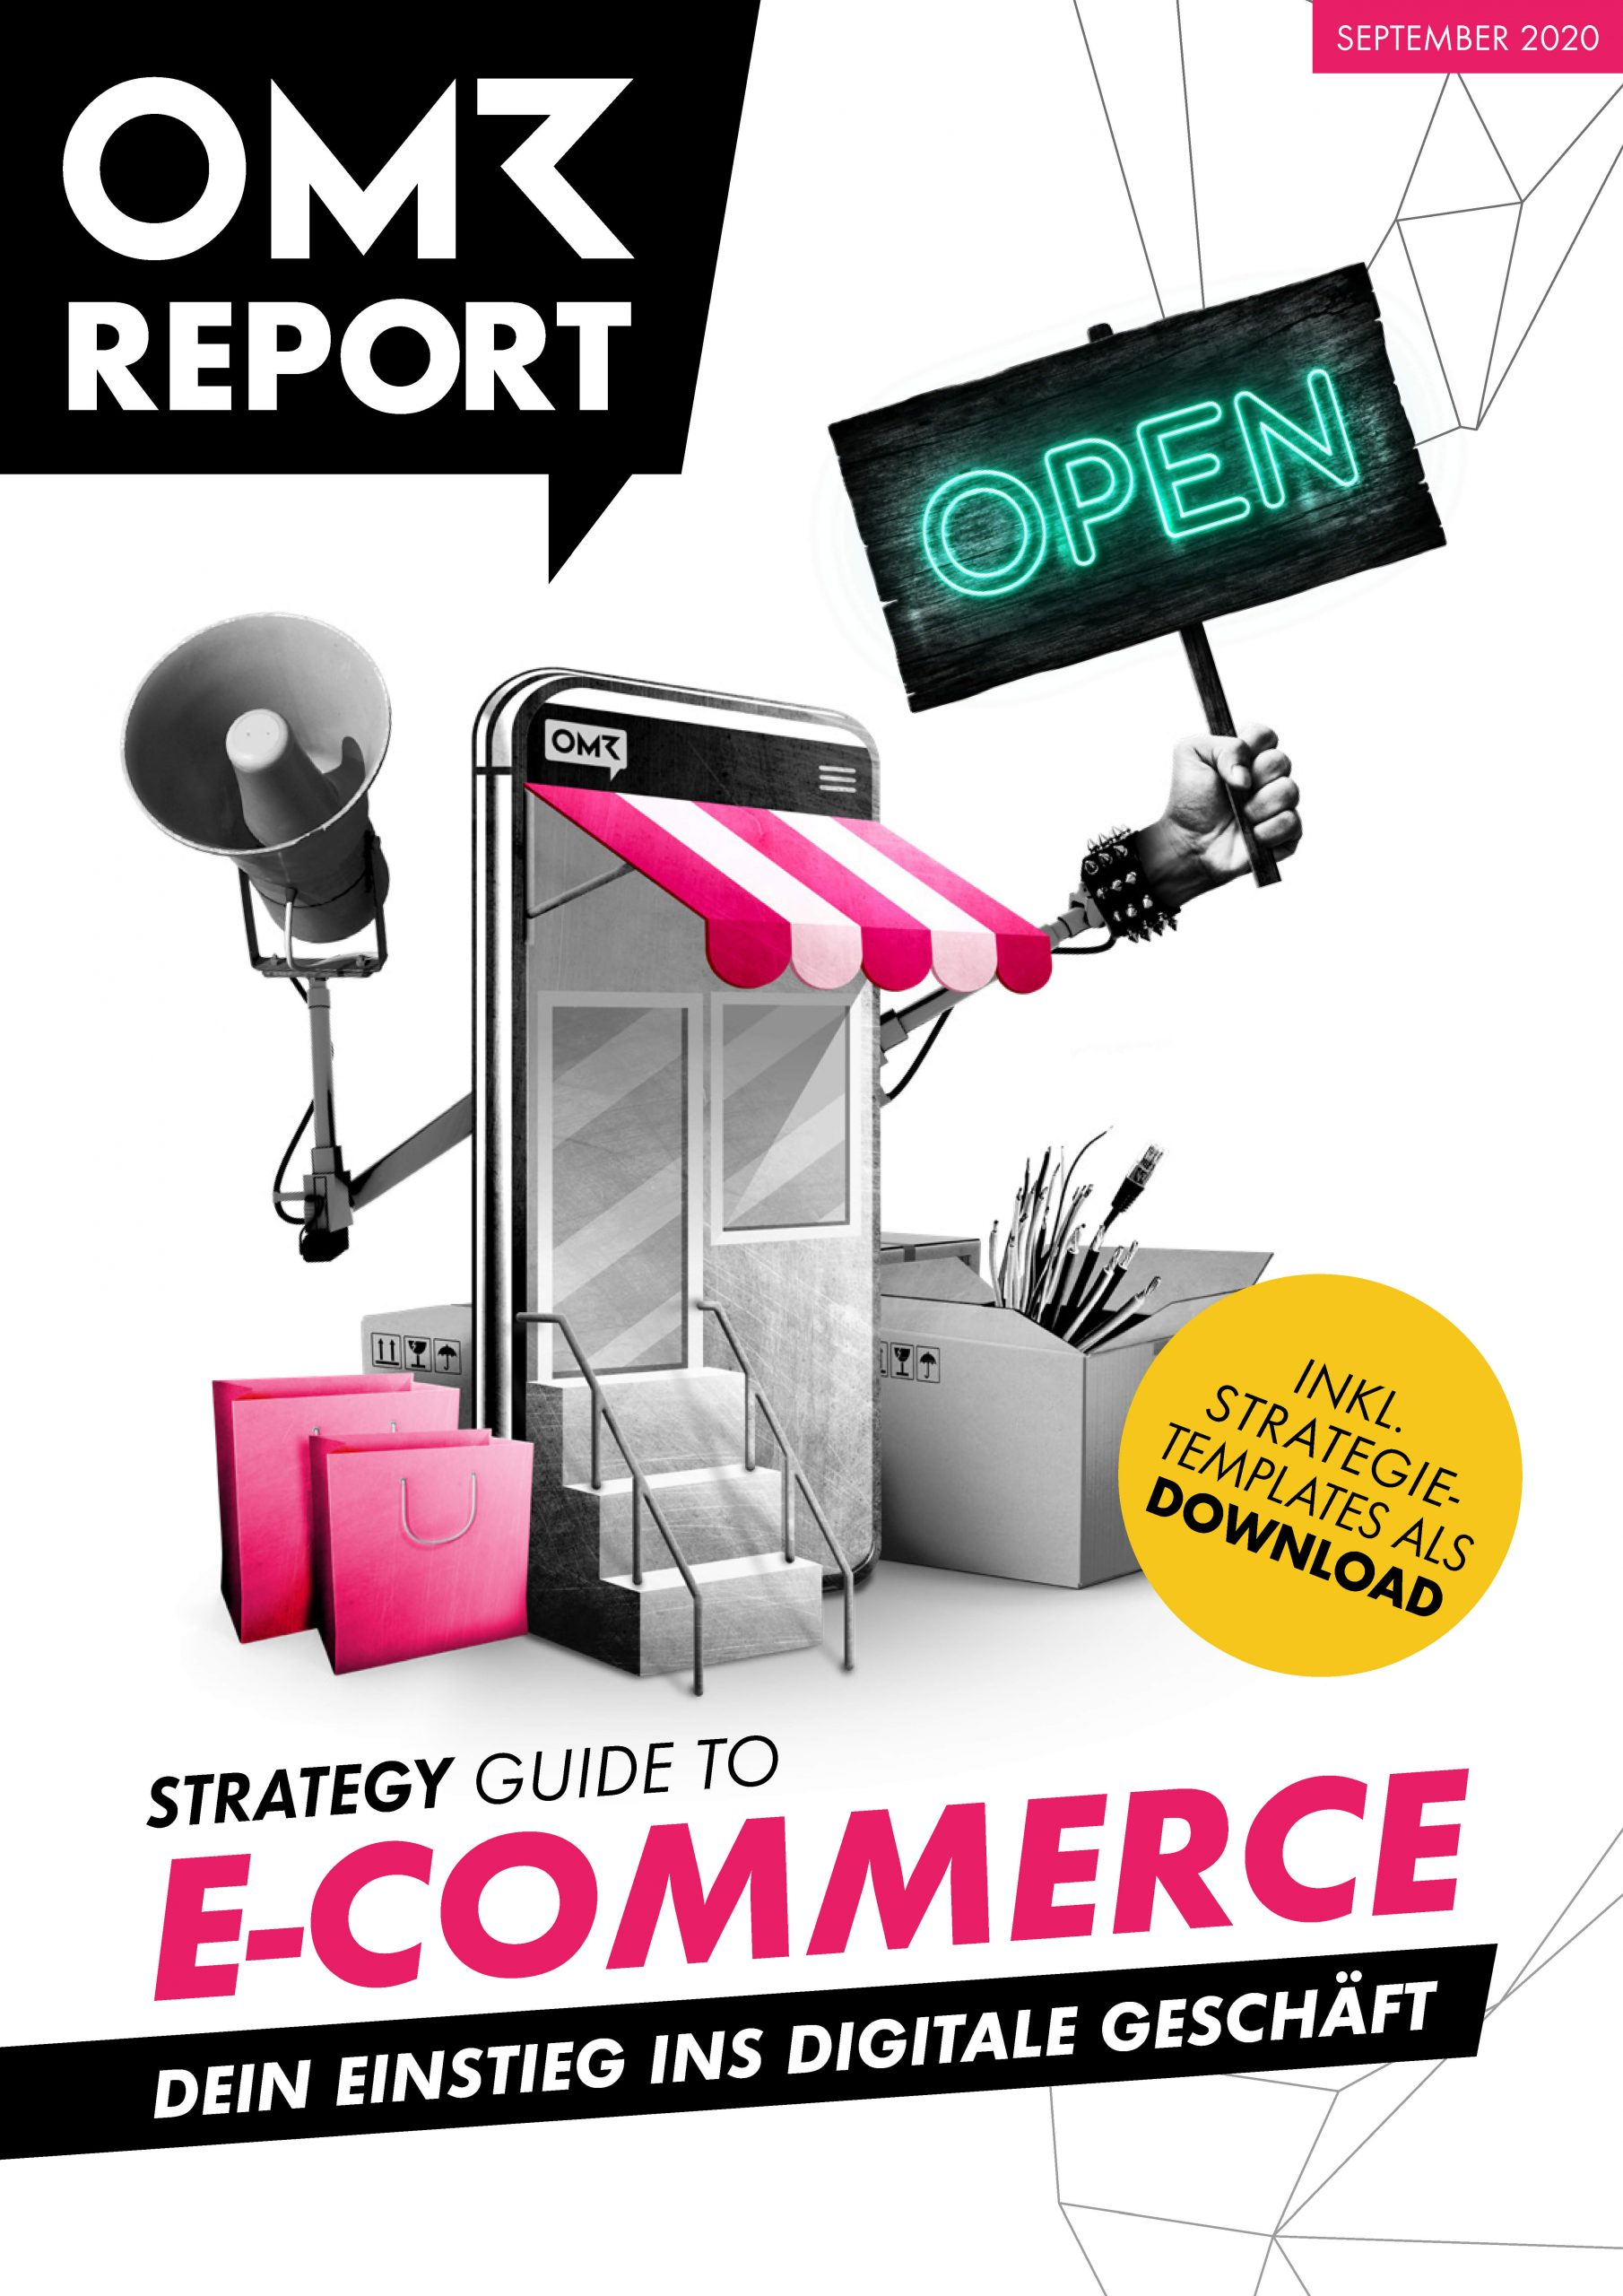 Strategy Guide to E-Commerce